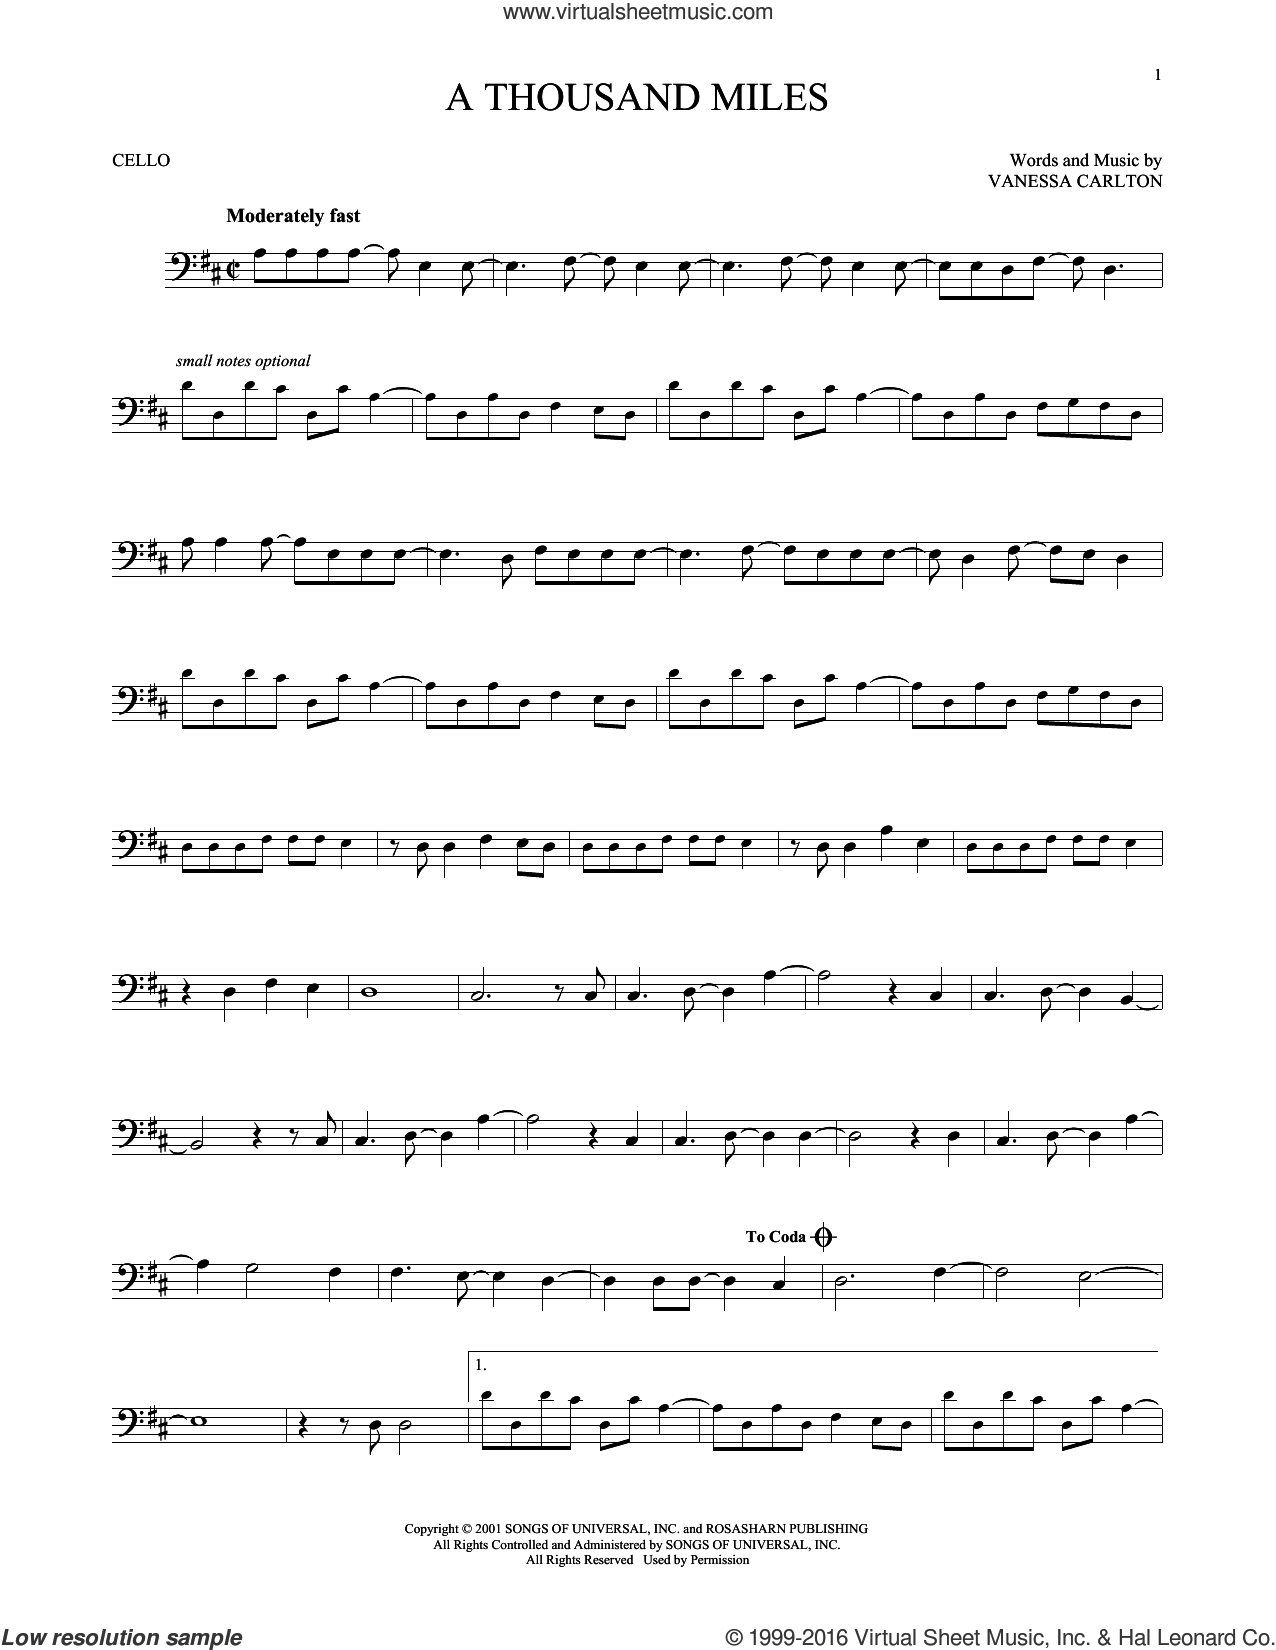 A Thousand Miles sheet music for cello solo by Vanessa Carlton, intermediate skill level